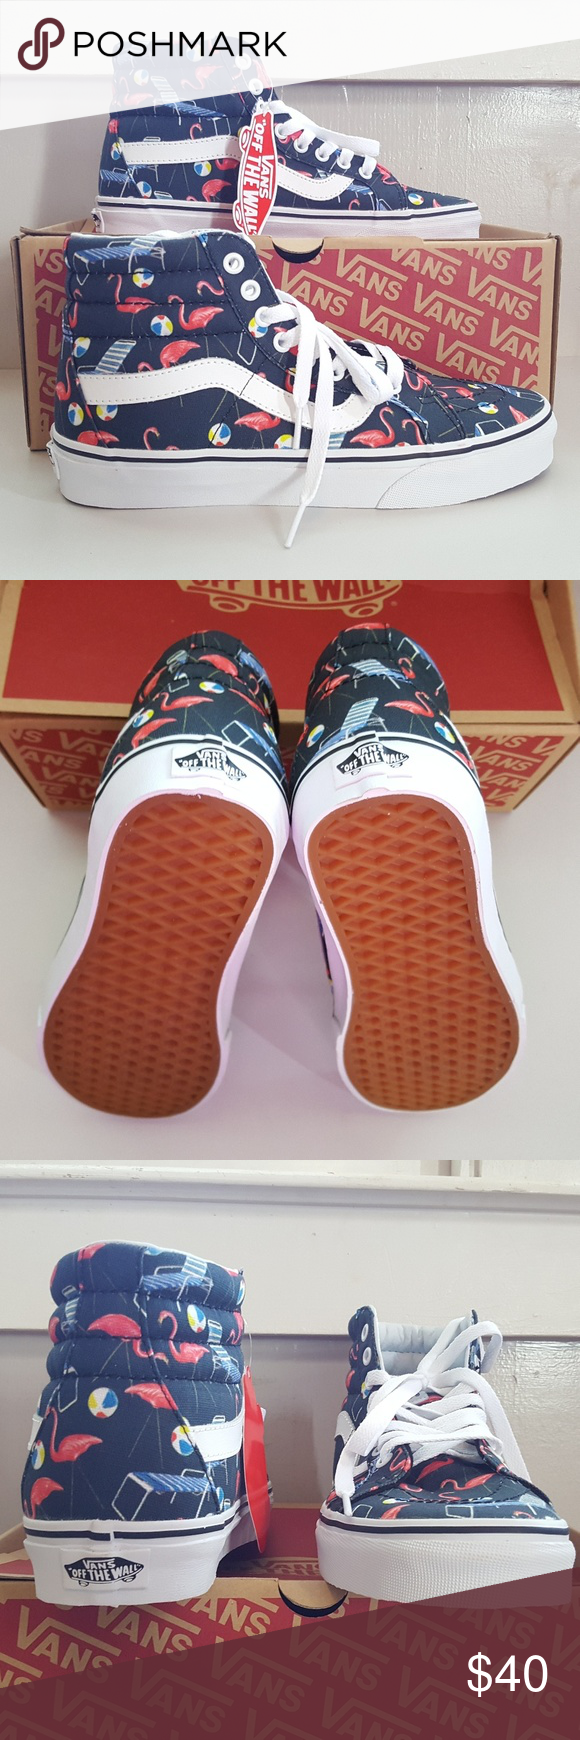 e35077f6dffac6 NWT VANS Pool Vibes Fun in the Sun Shoes Fun summer print hi-top shoes.  Sturdy canvas upper. So cool and comfy. Size  Women 8 Men 6.5 vans Shoes  Sneakers